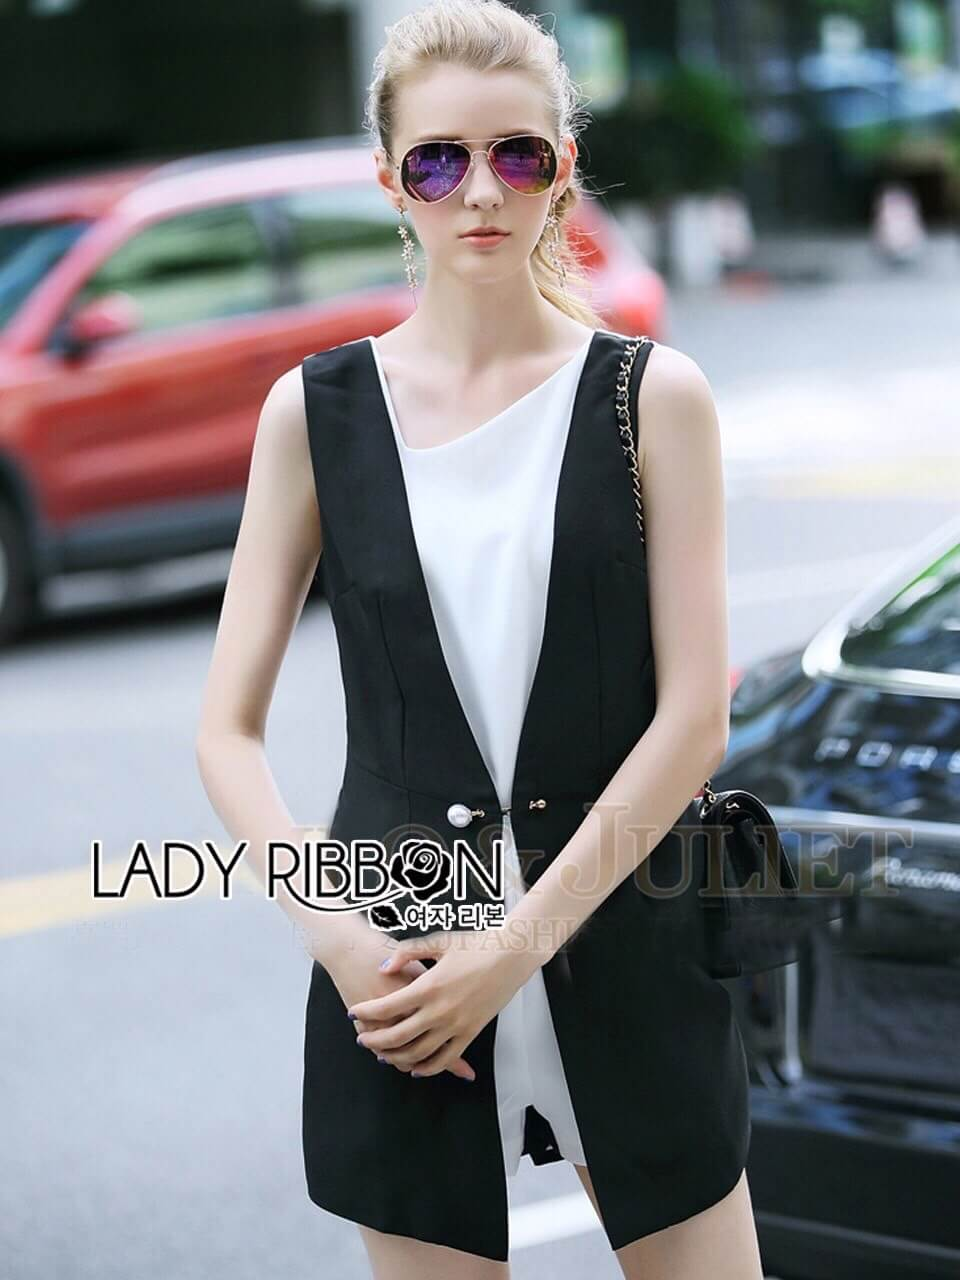 &#x1F380 Lady Ribbon's Made &#x1F380 Lady Anna Casual Chic Black and White Playsuit with Pearl Pin